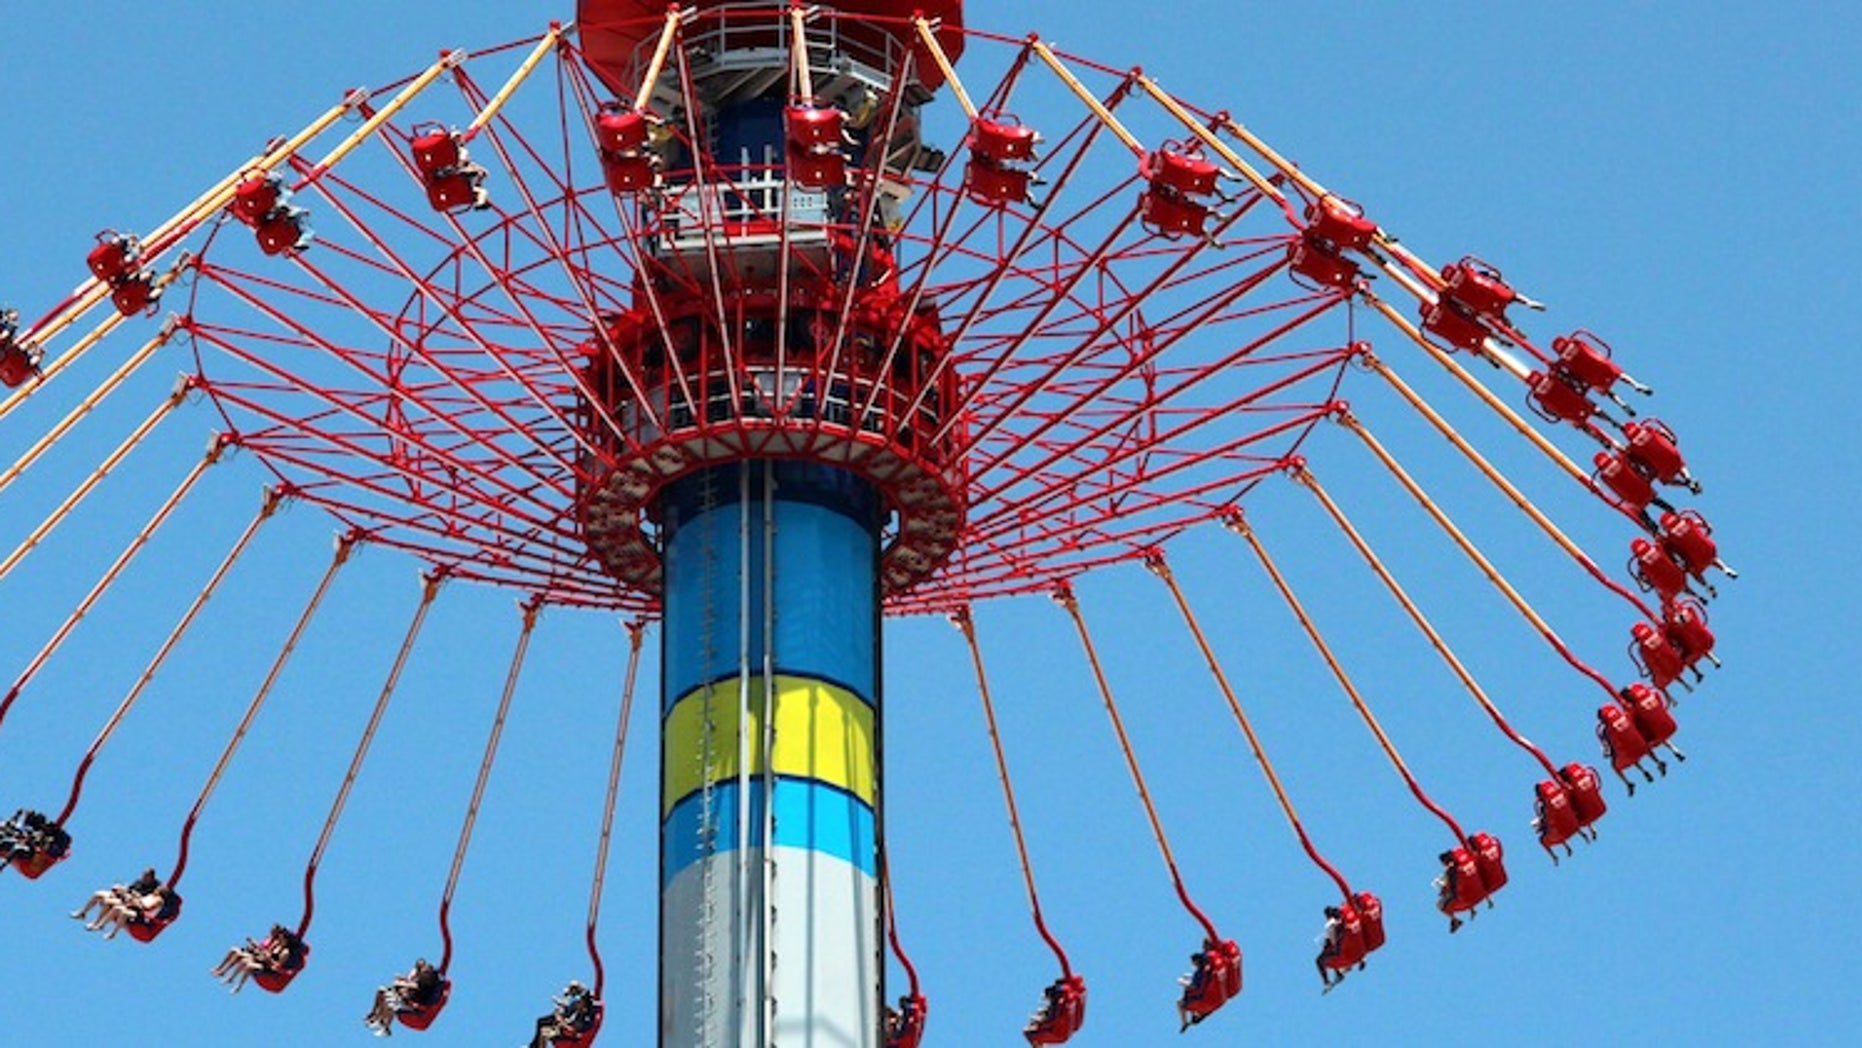 The Windseeker at Carowinds is the park's tallest ride.